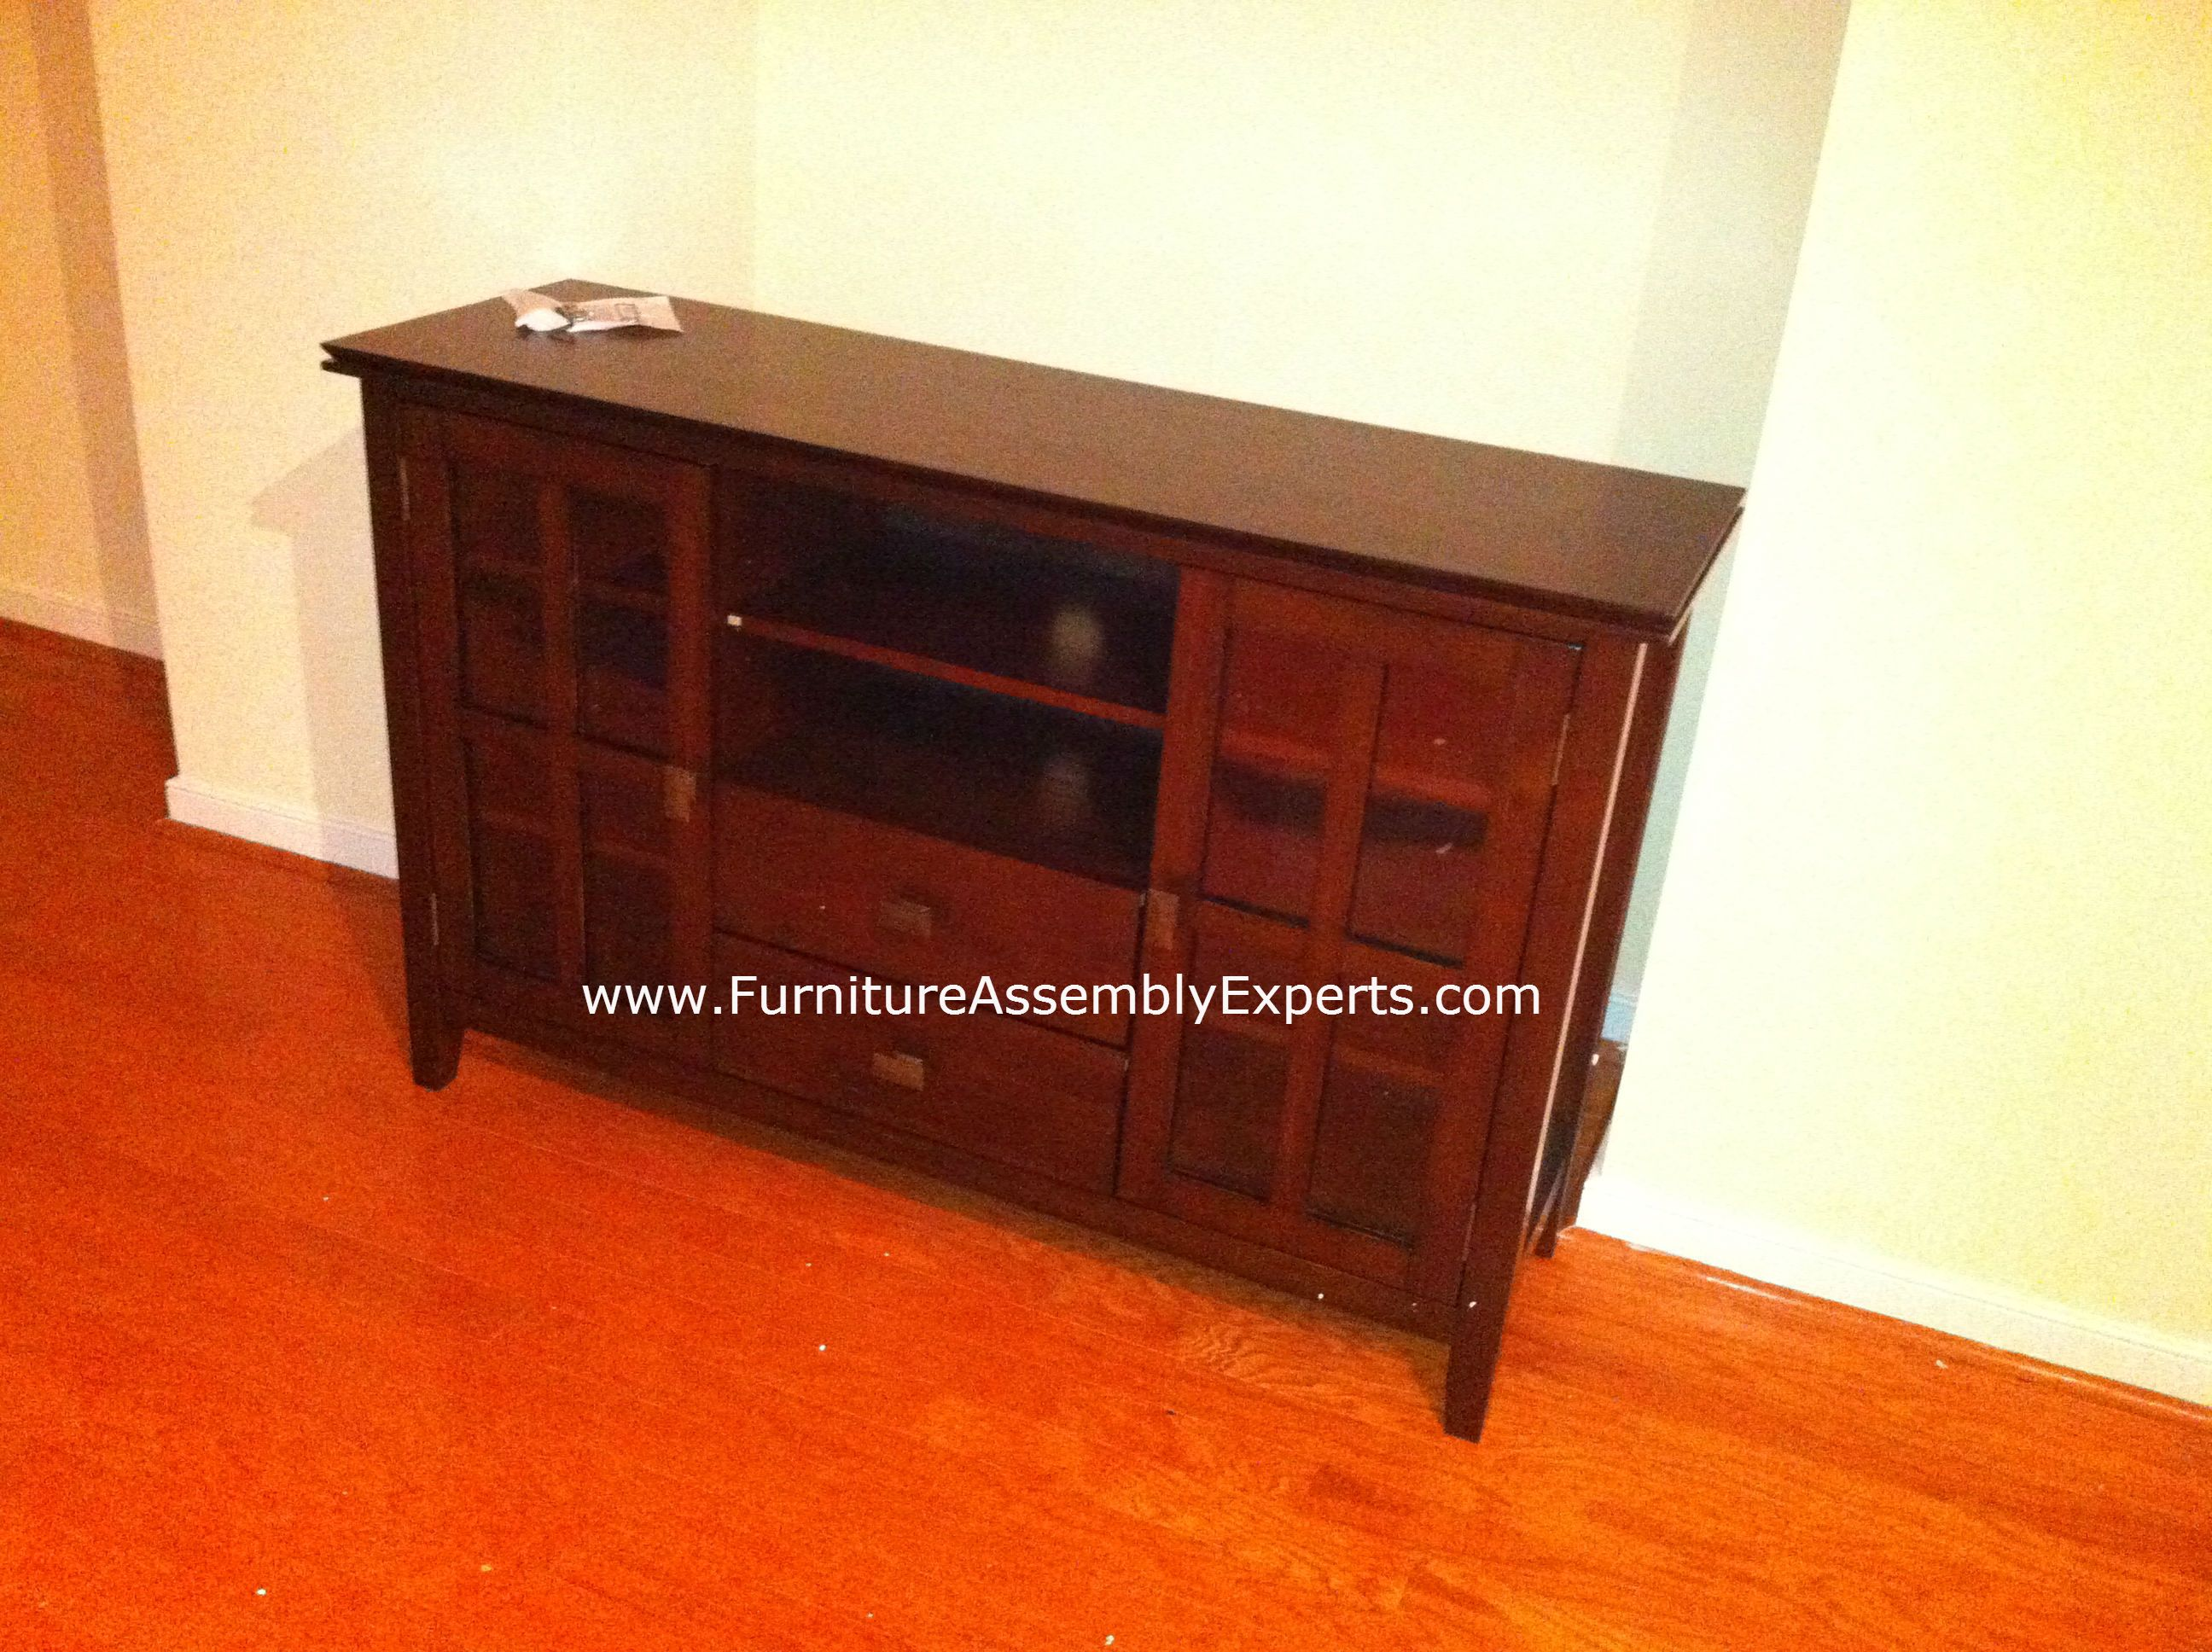 Tv Stand Embled In Glen Burnie Md By Furniture Embly Experts Llc Call 2407052263